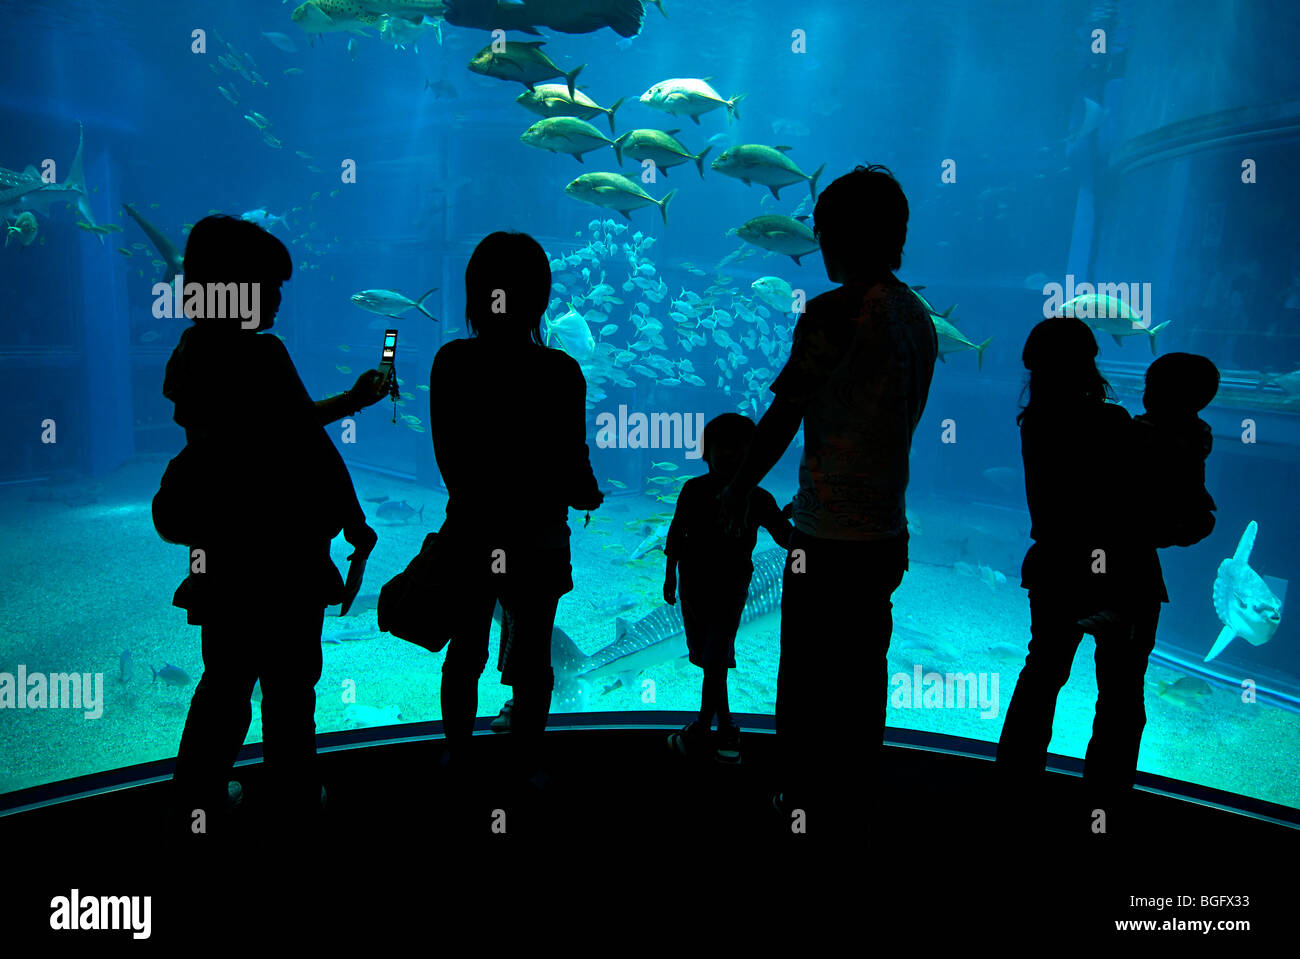 Osaka aquarium, Osaka, JapanStock Photo